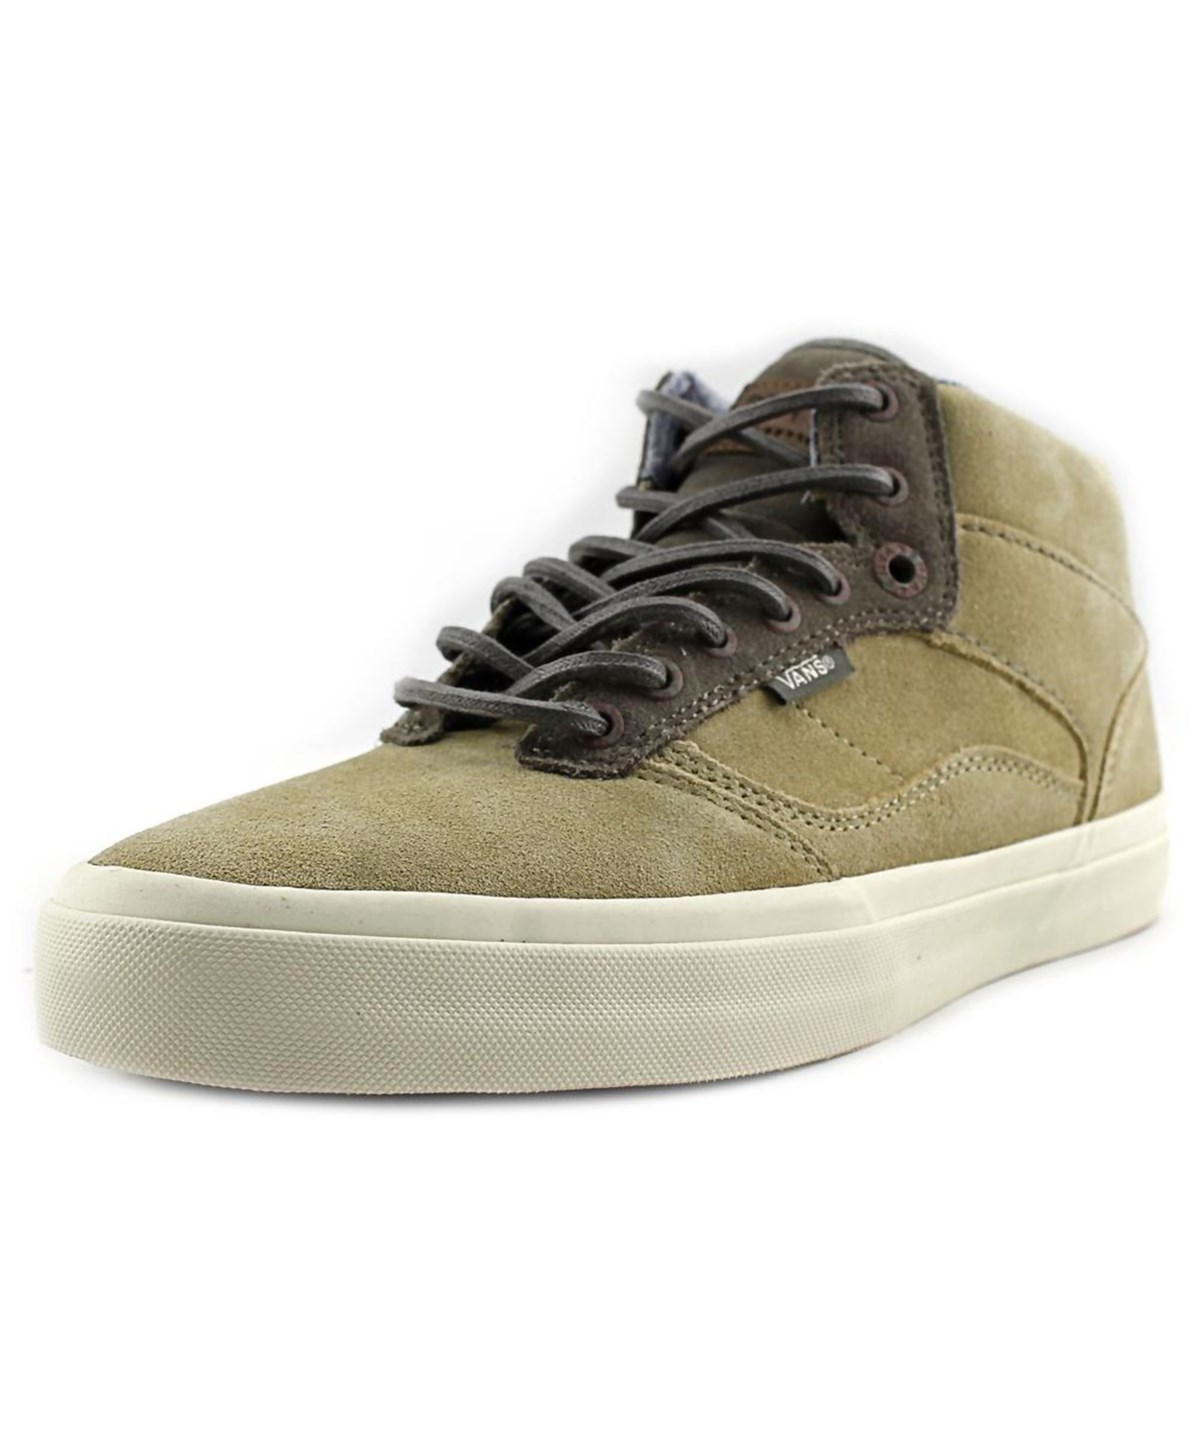 Vans Bedford   Round Toe Canvas  Sneakers In Khaki